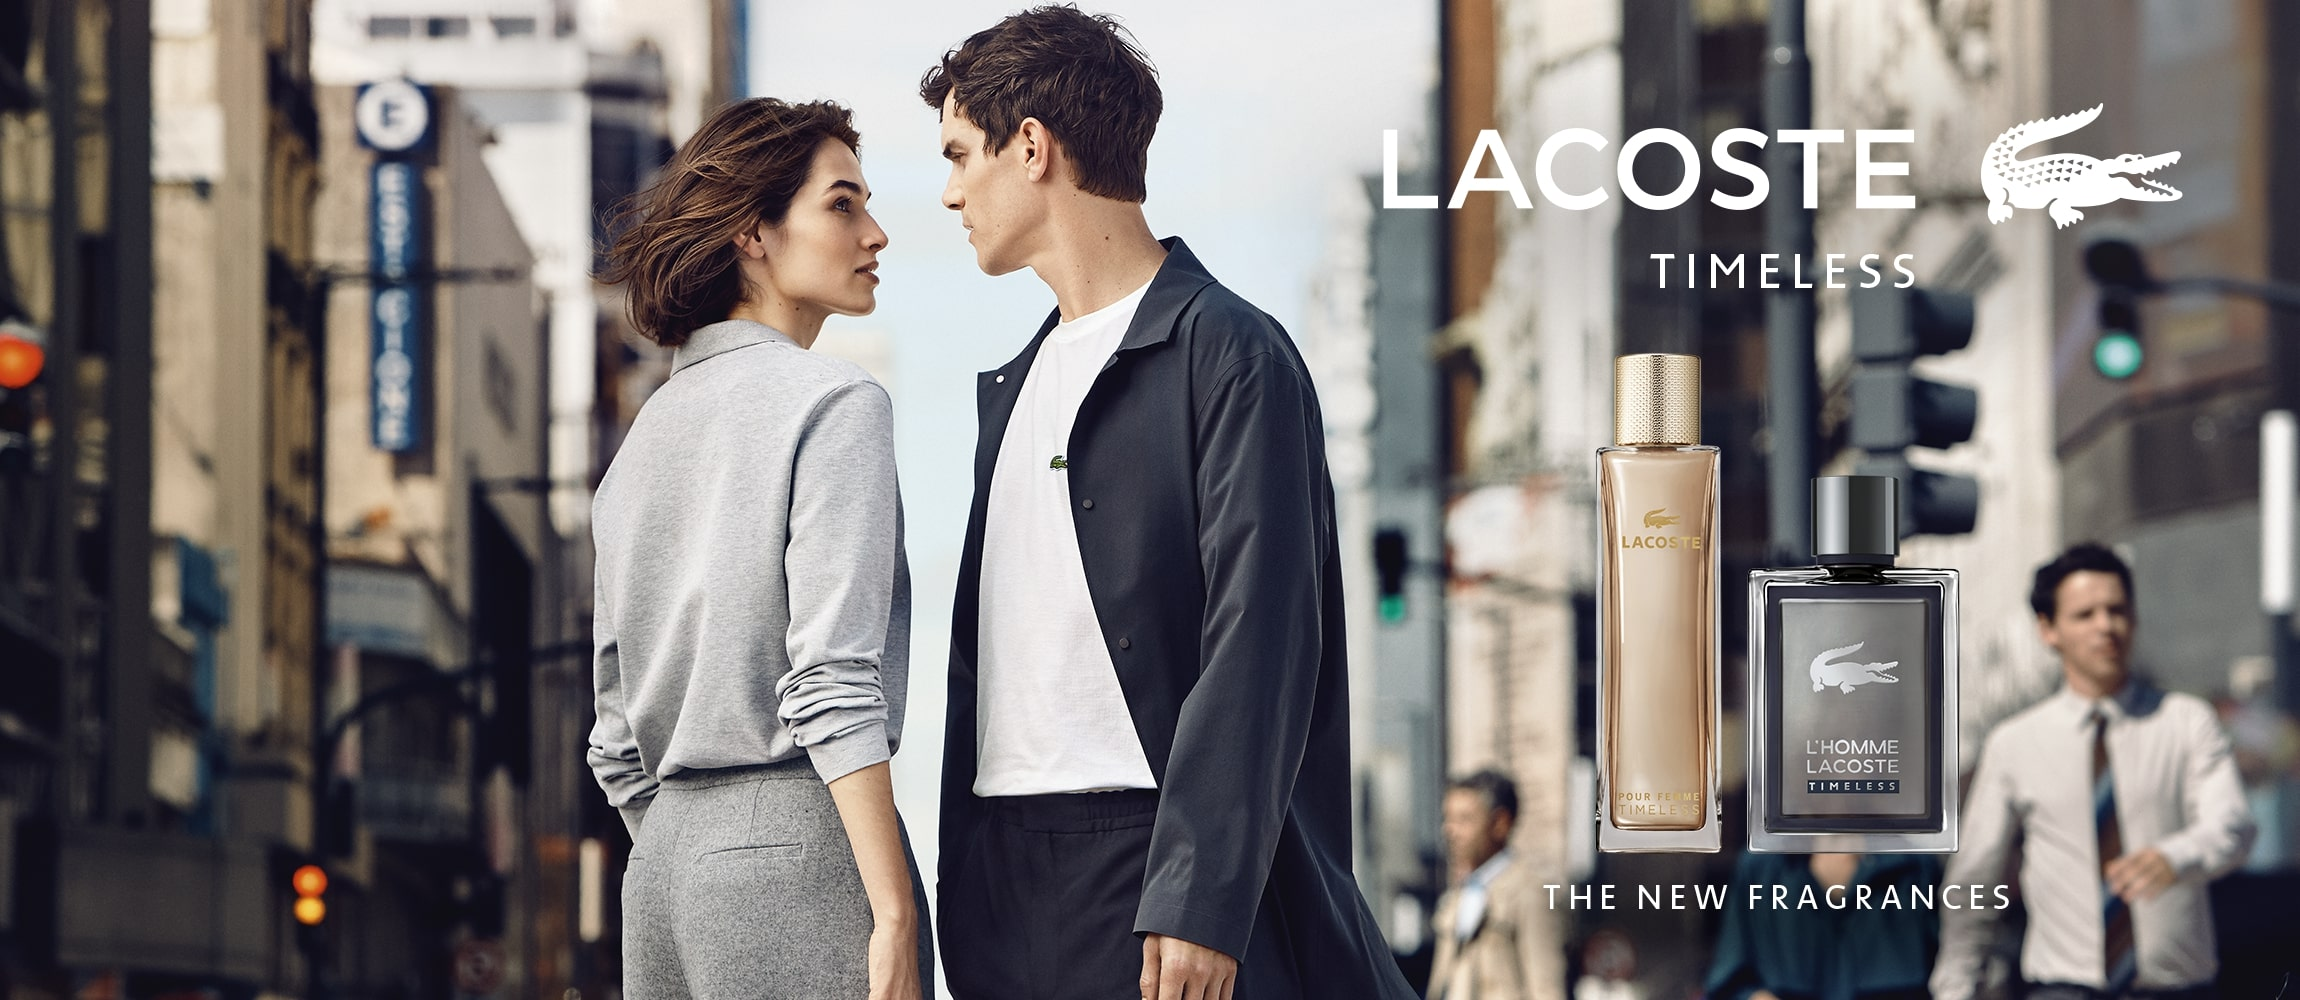 Lacoste, Timeless, parfume